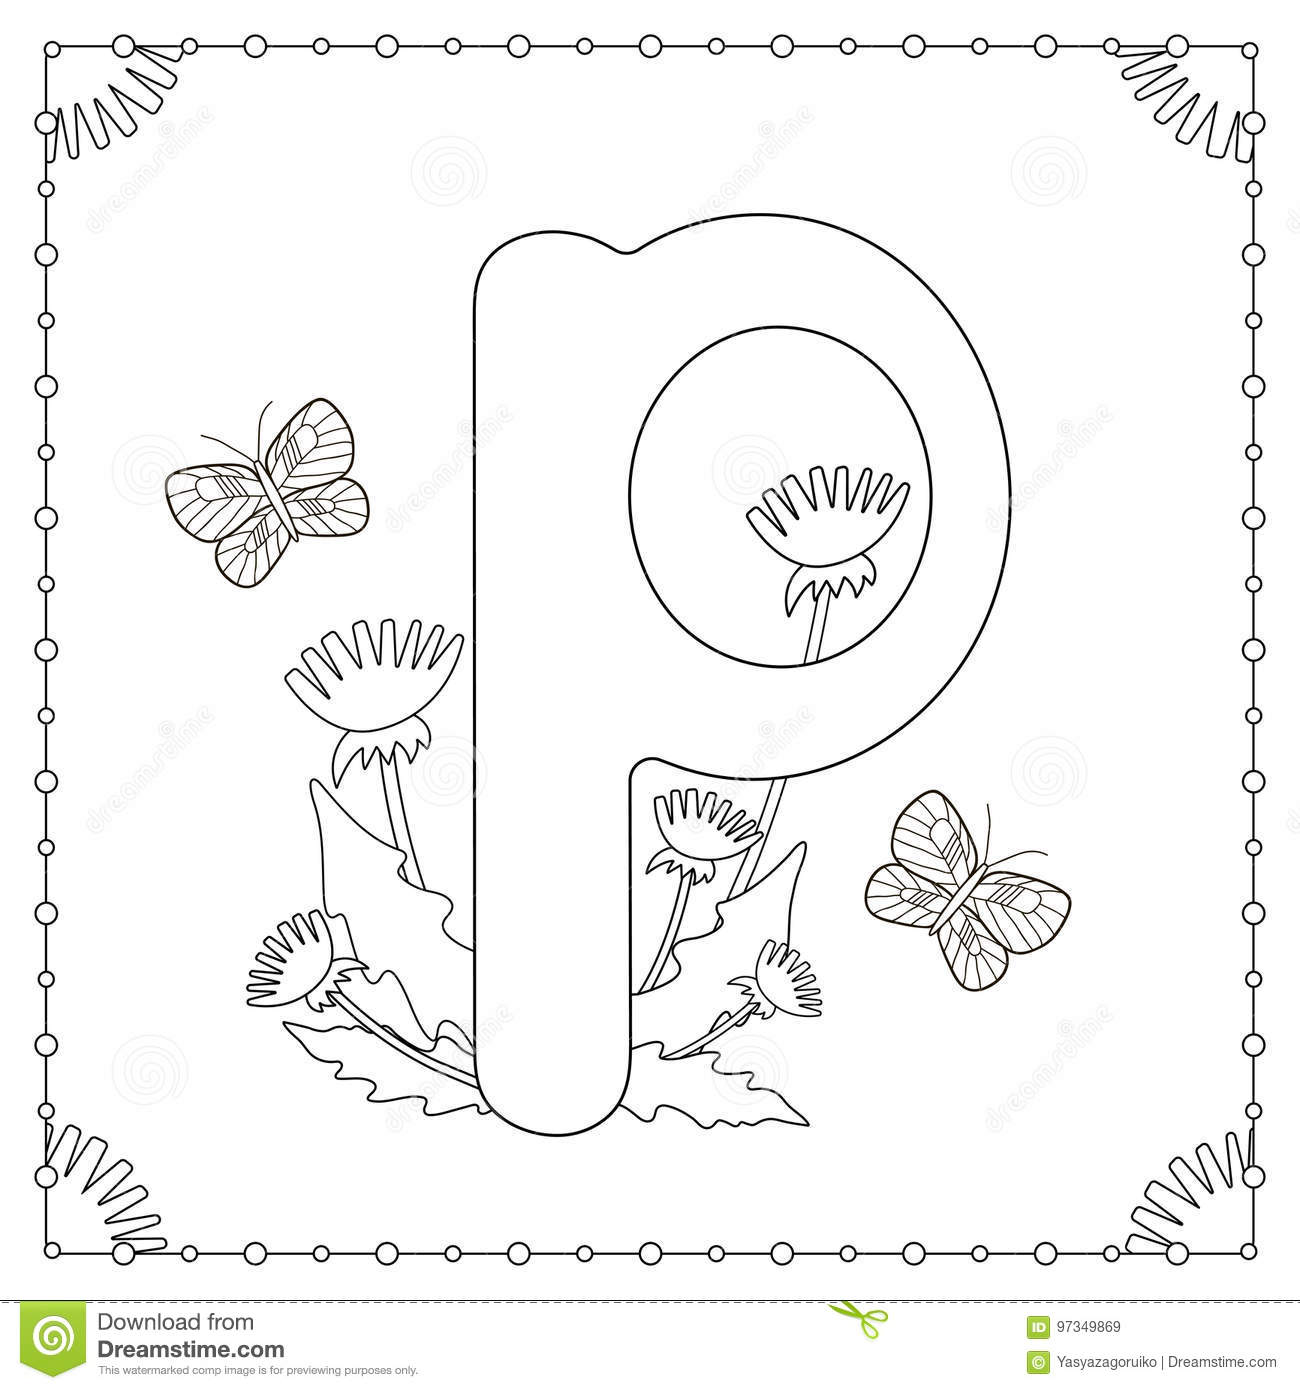 Alphabet Coloring Page Capital Letter P With Flowers Leaves And Butterflies Vector Illustration